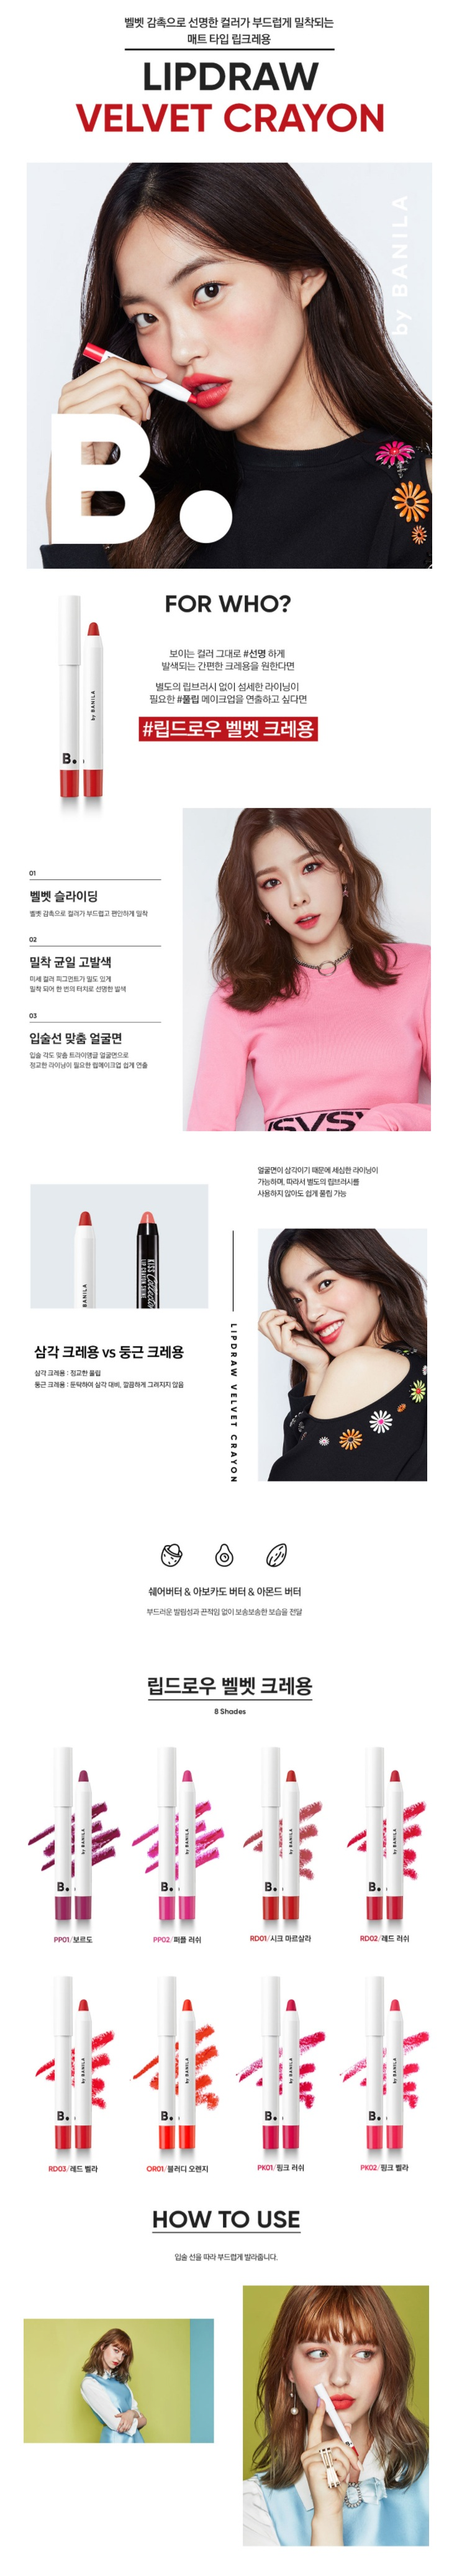 Banila Co Lip Draw Velvet Crayon korean cosmetic makeup product online shop malaysia singapore macau1